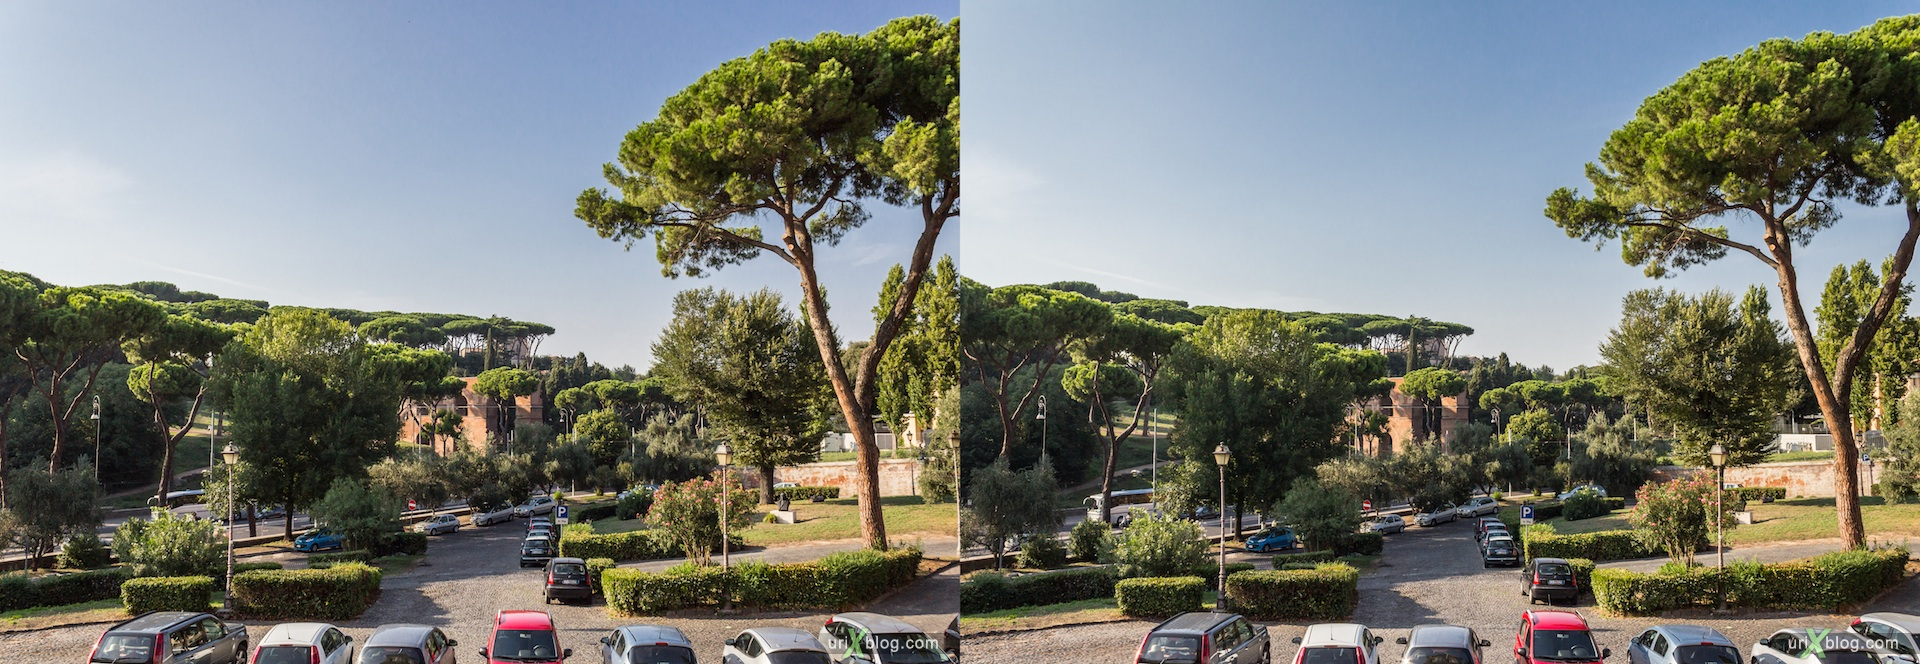 2012, Palatine hill, panorama view, stairs, San Gregorio Magno church, 3D, stereo pair, cross-eyed, crossview, cross view stereo pair